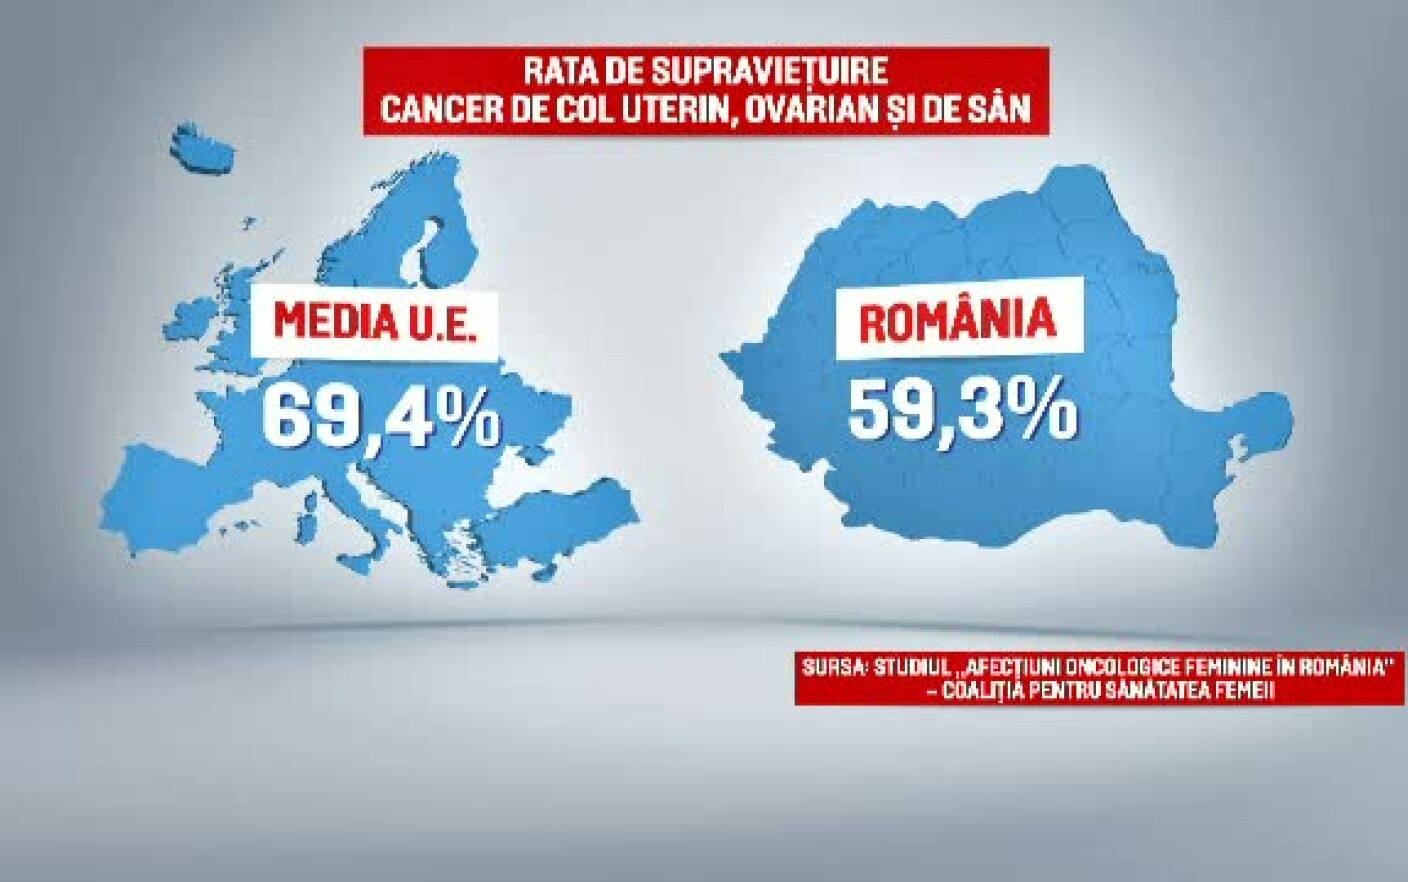 incidenta cancerului de col uterin in romania